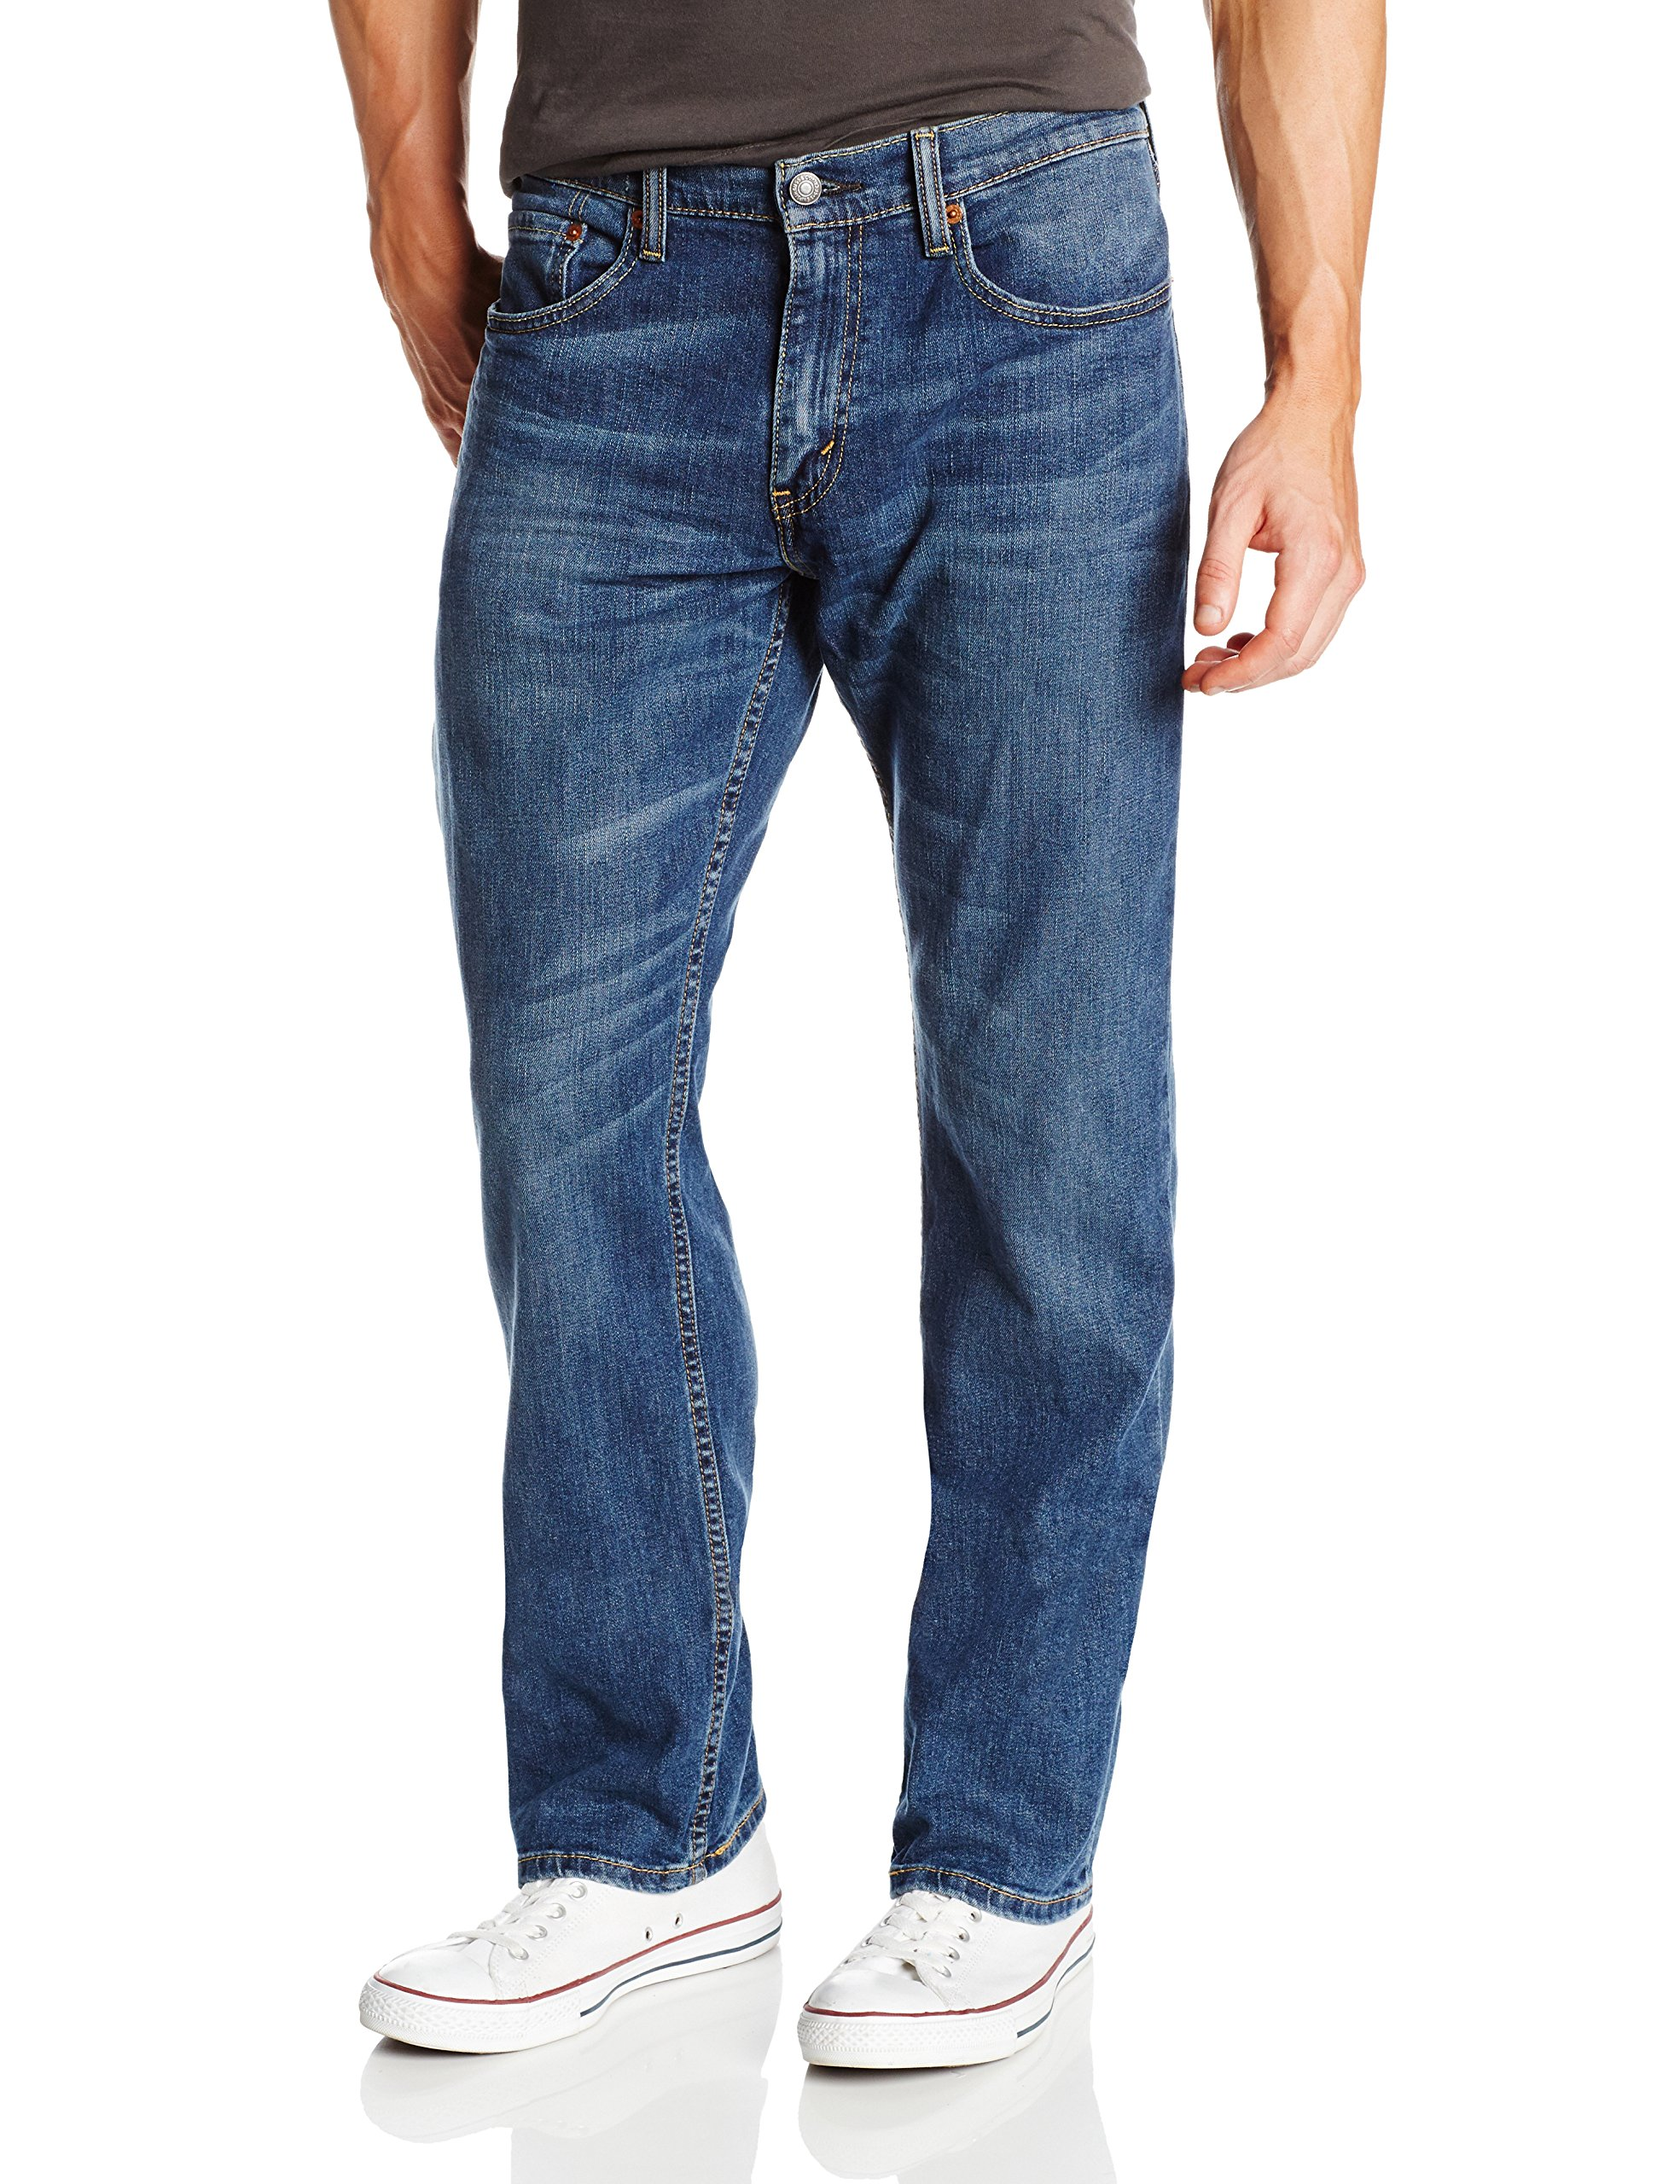 Levi's Men's 559 Relaxed Straight Fit Jean - 36W x 30L - Steely Blue - Stretch by Levi's